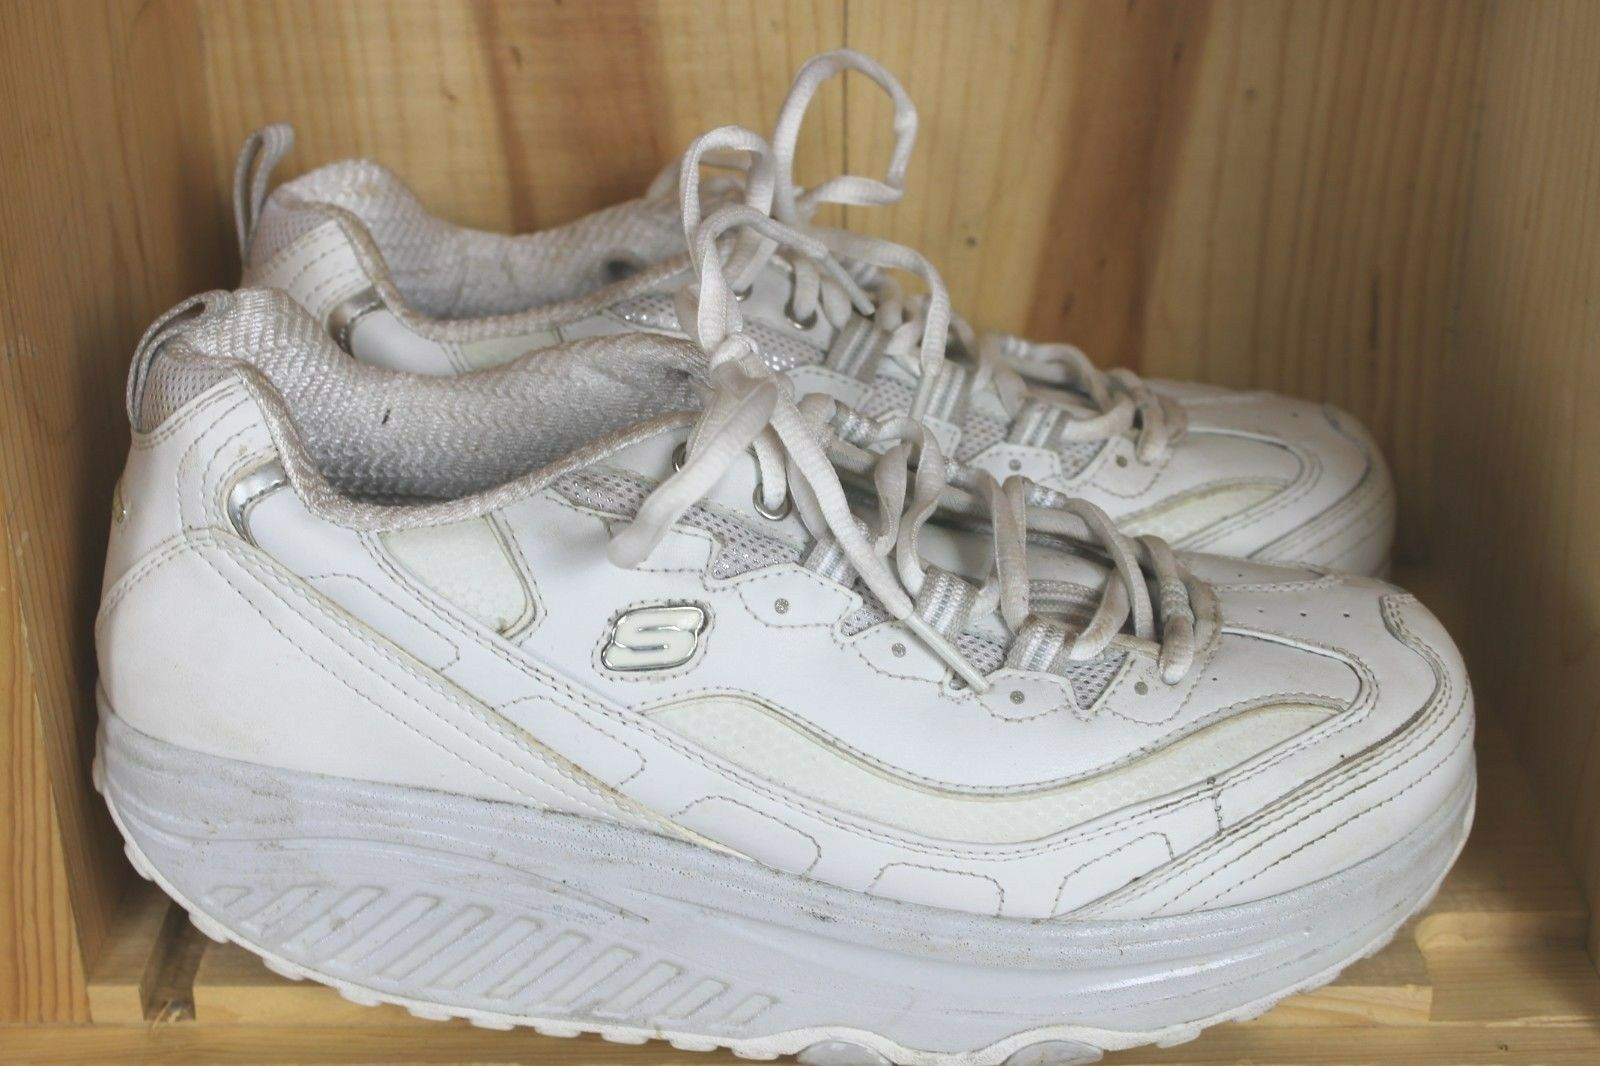 Skechers Shape Ups Leder Fitness Athletic Schuhes Weiß Leder Ups sz 9.5 Damenschuhe 11800 986c89